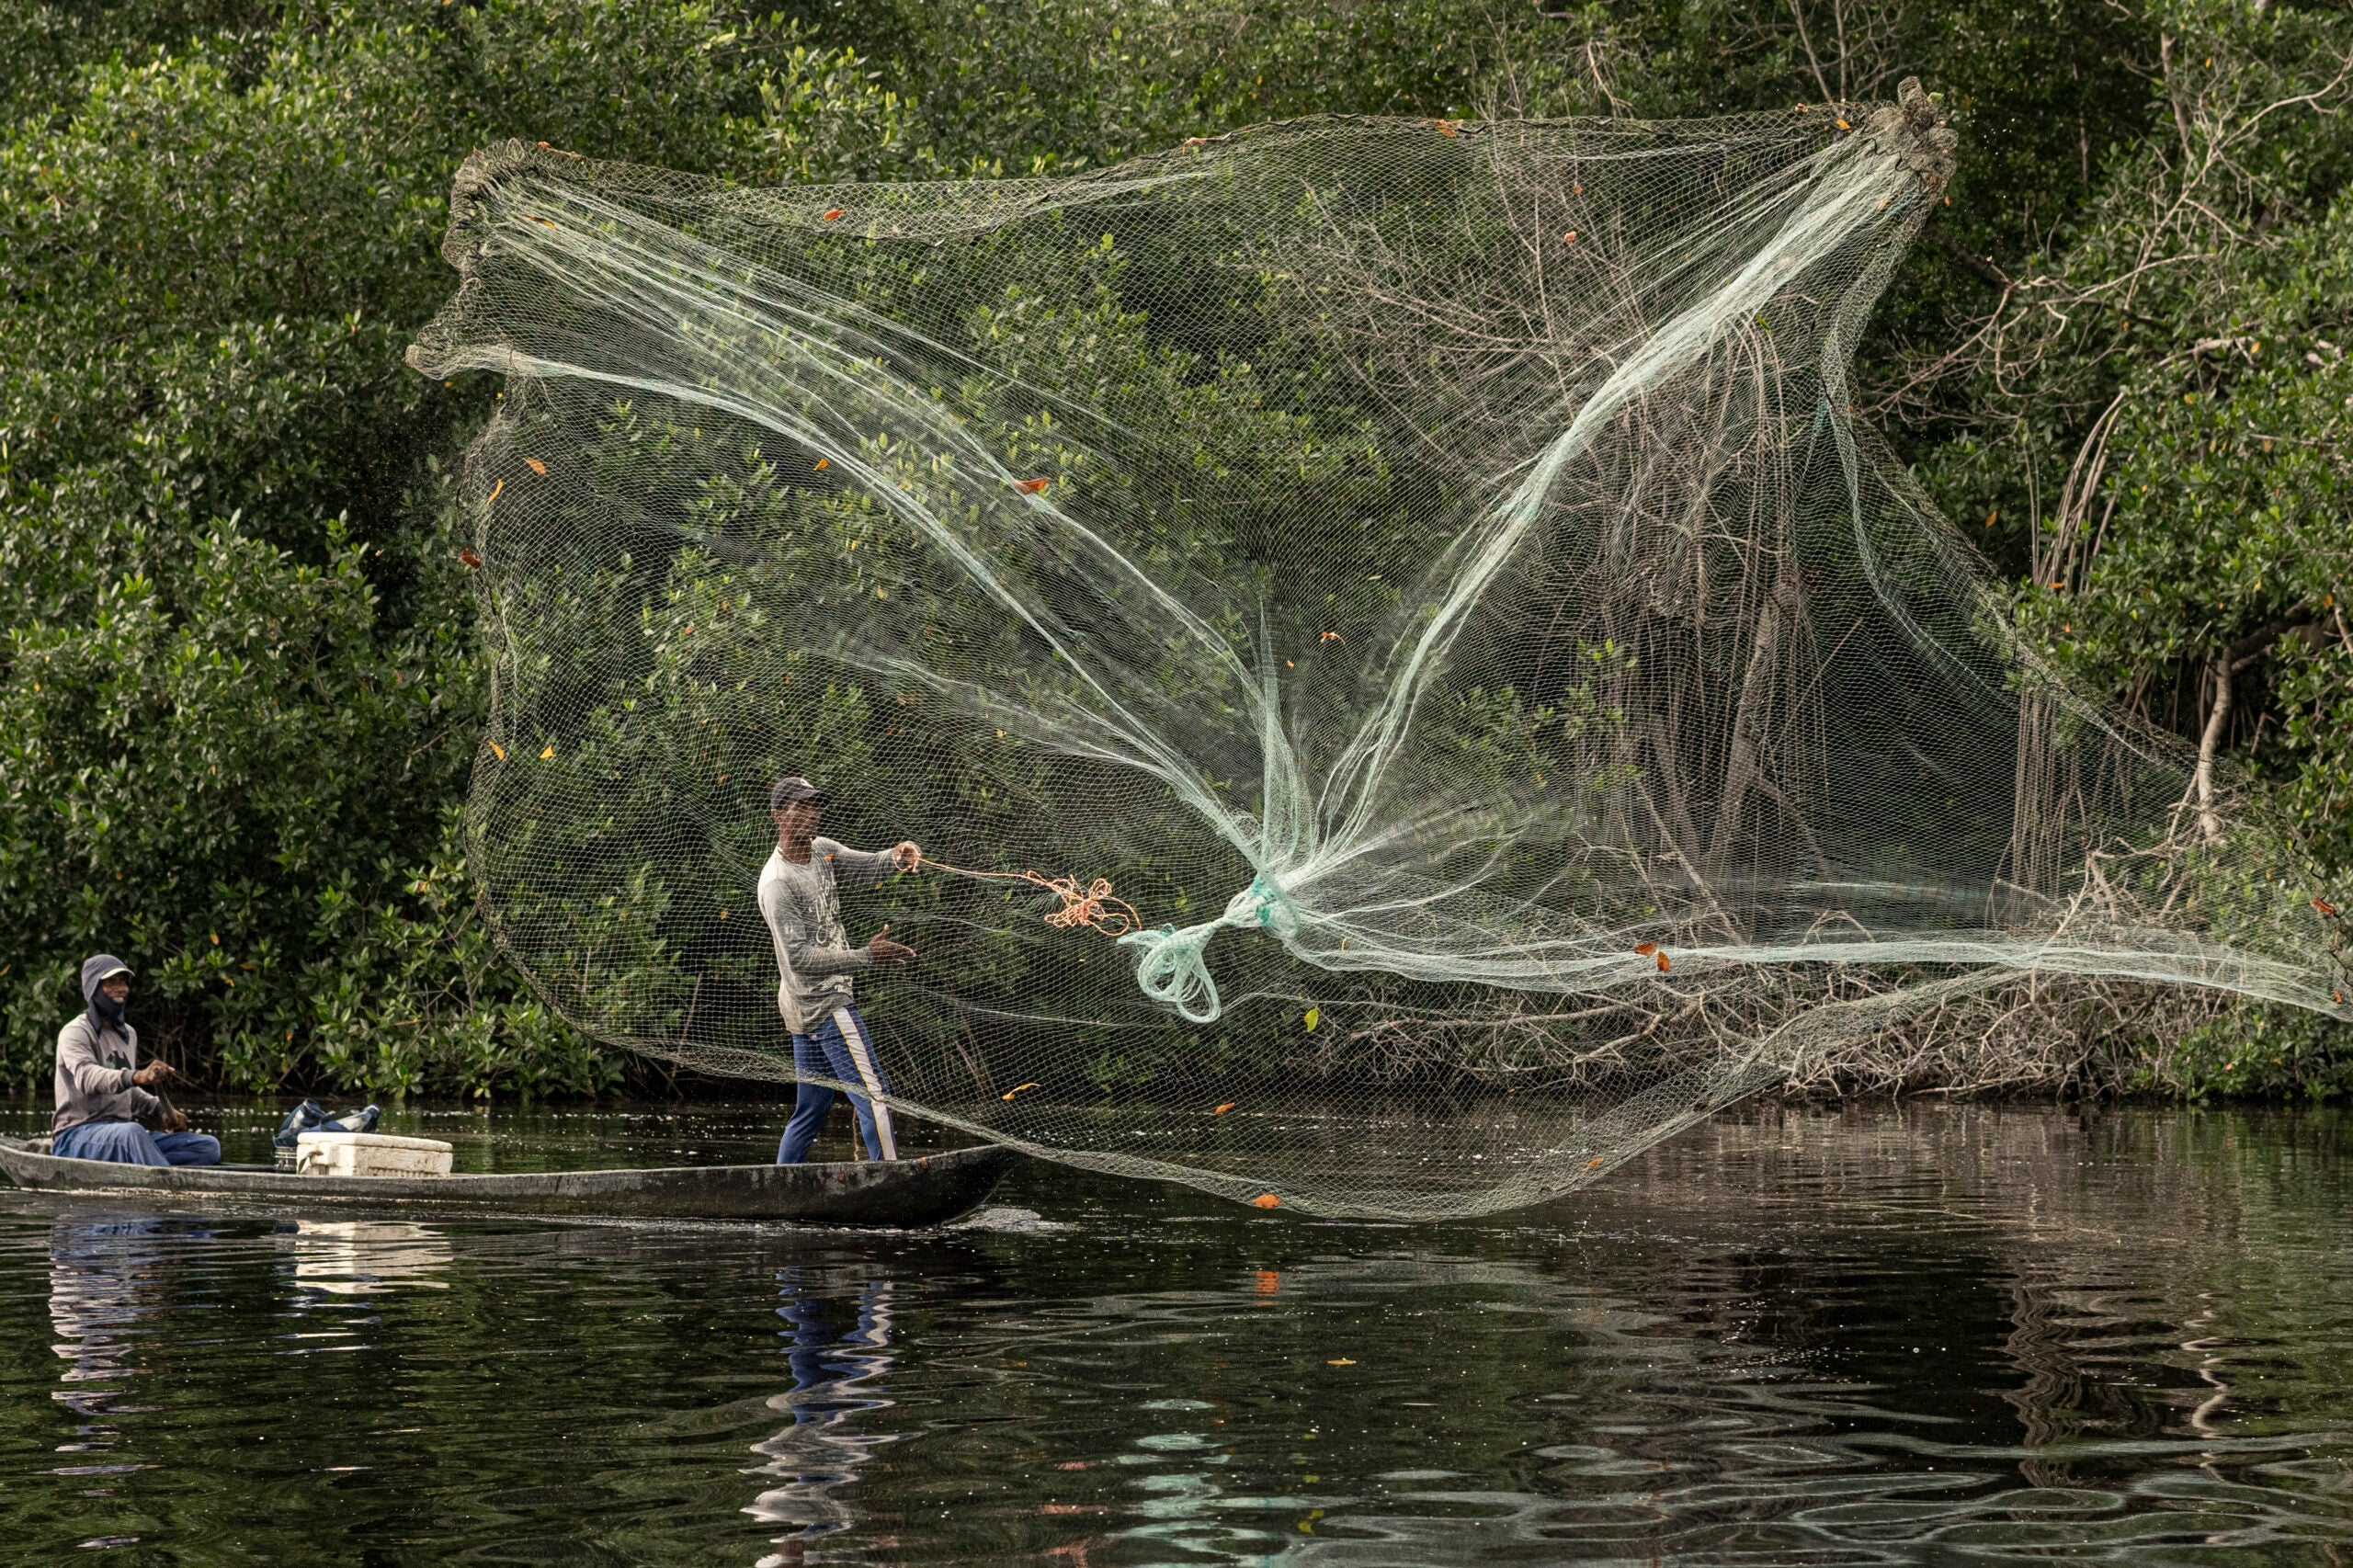 Two men throw a net from a boat in the Colombian mangroves.